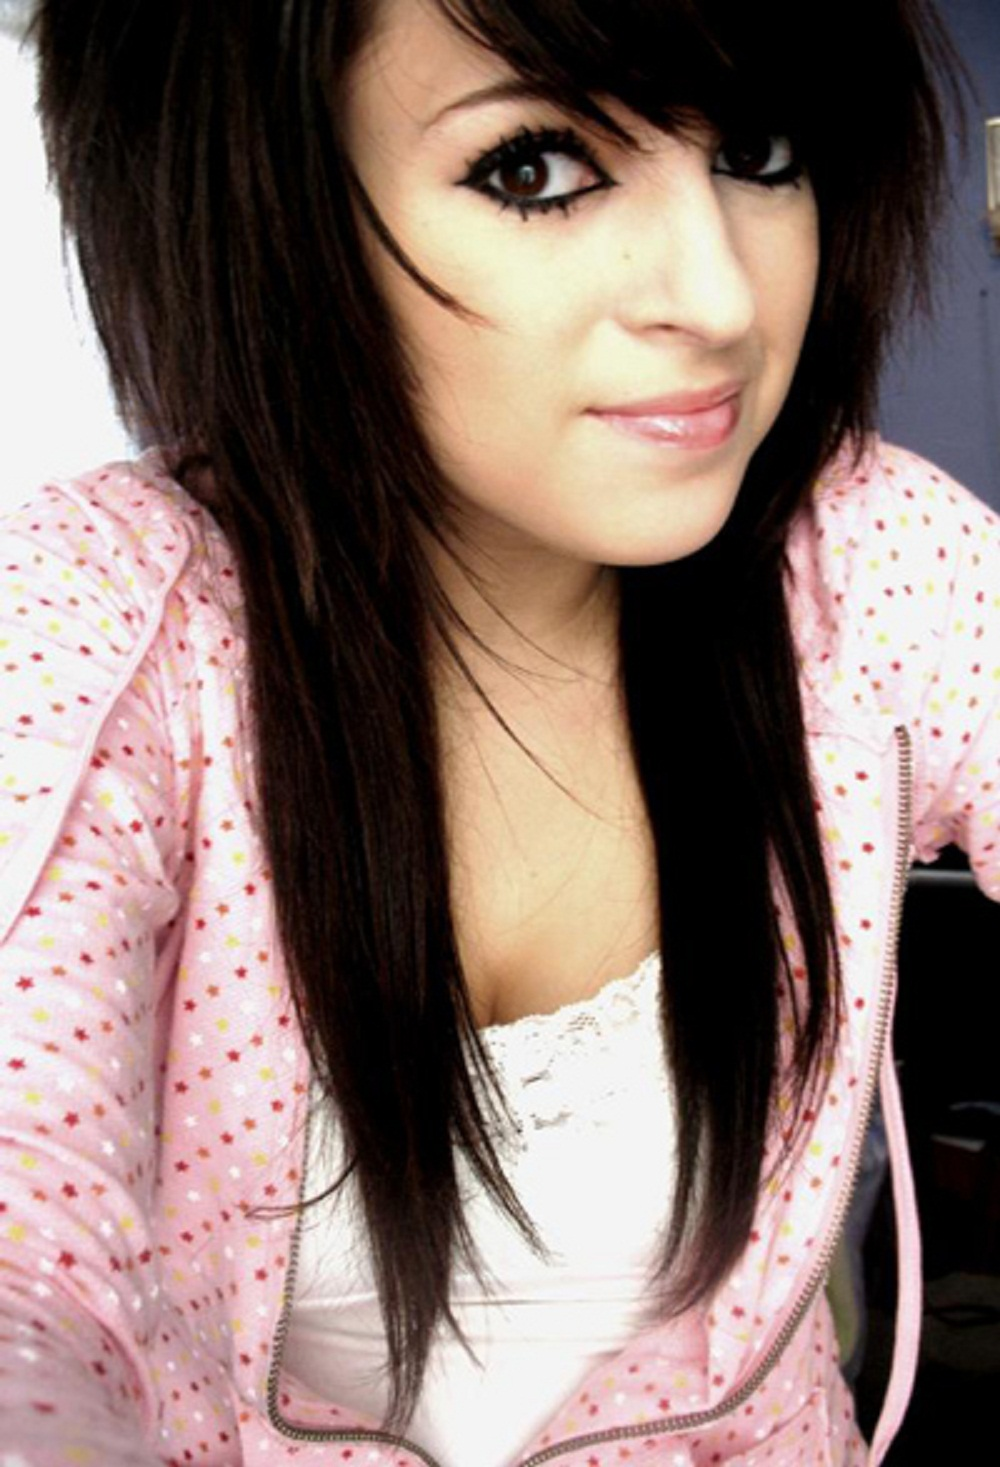 Emo Hairstyles For Girls Pictures